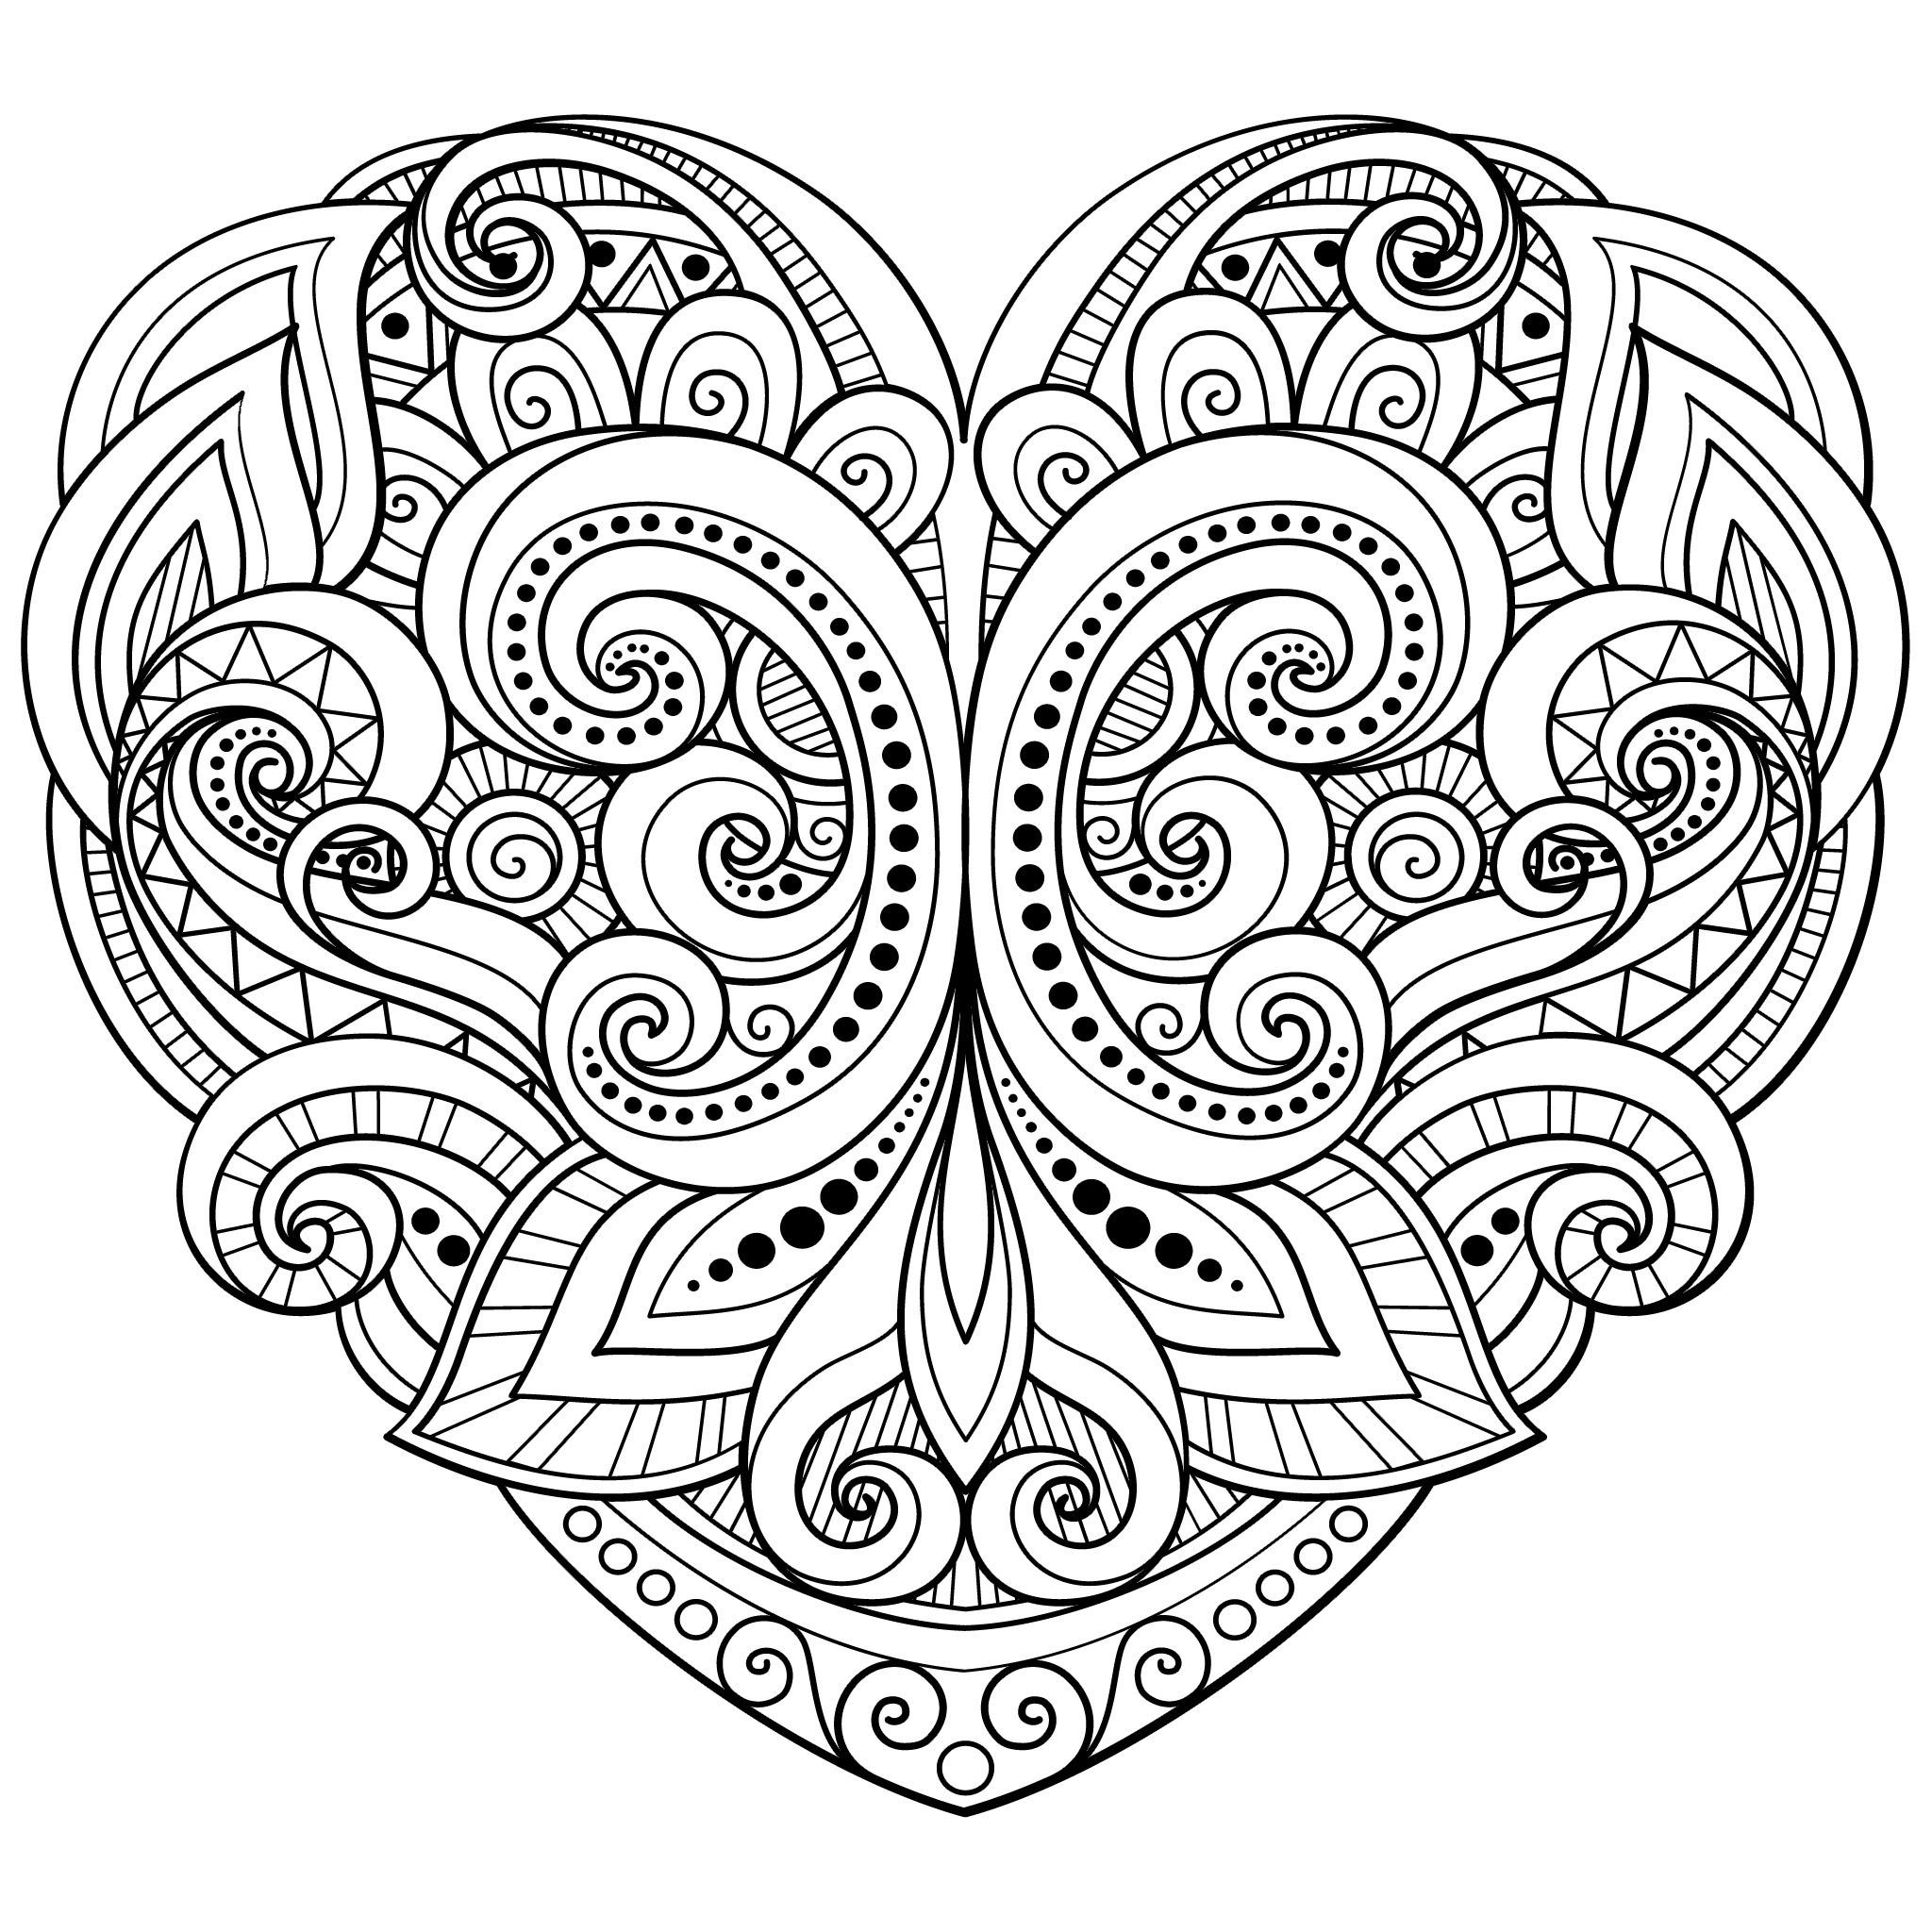 160 Printable Mandala Animals Flowers Pages Heart Coloring Pages Love Coloring Pages Mandala Coloring Pages